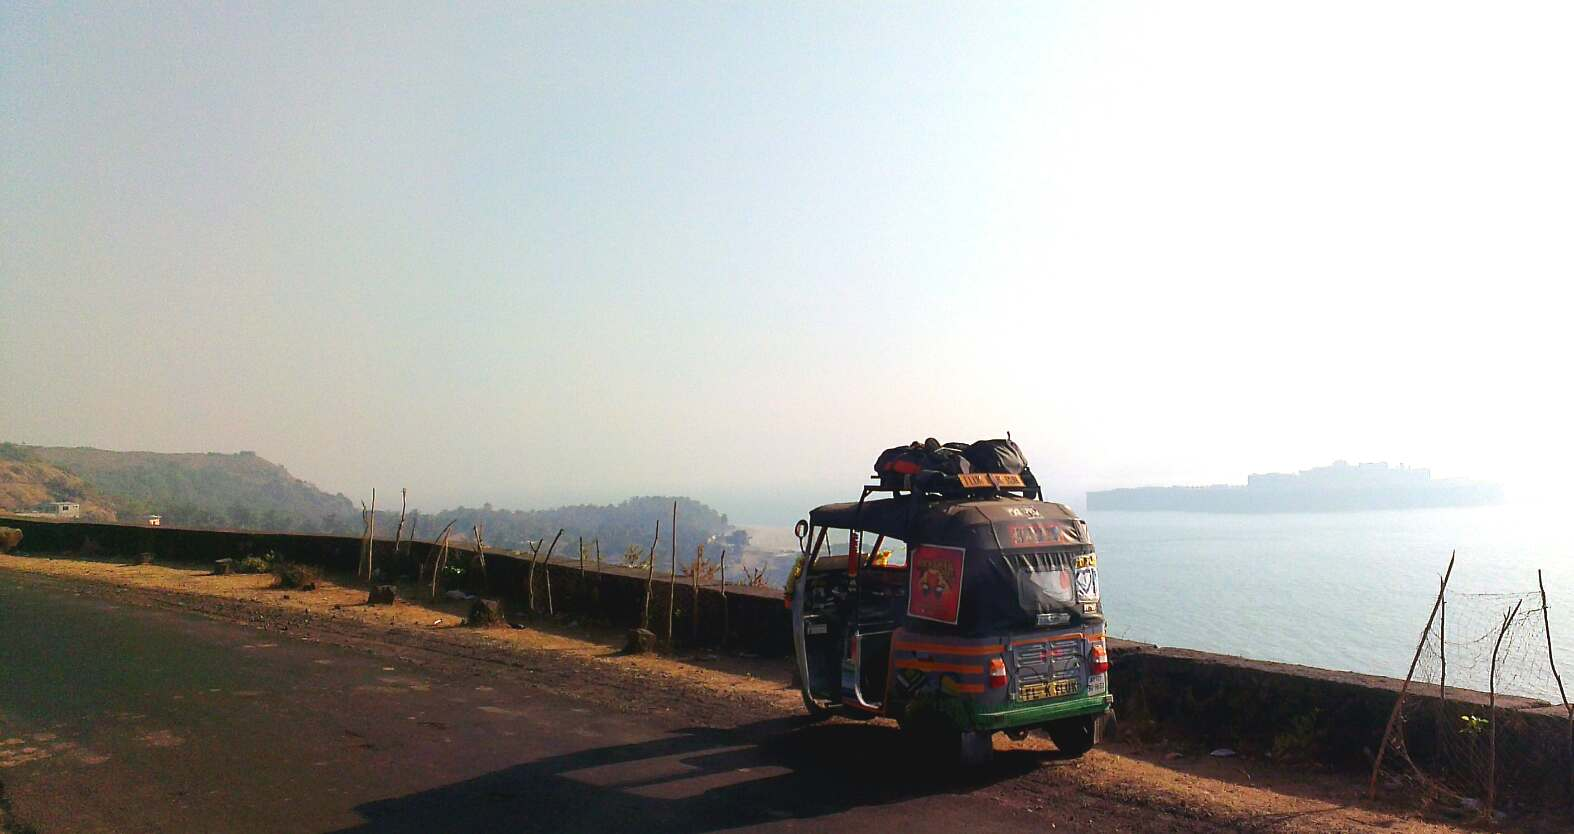 Day 7 on the road to Murud